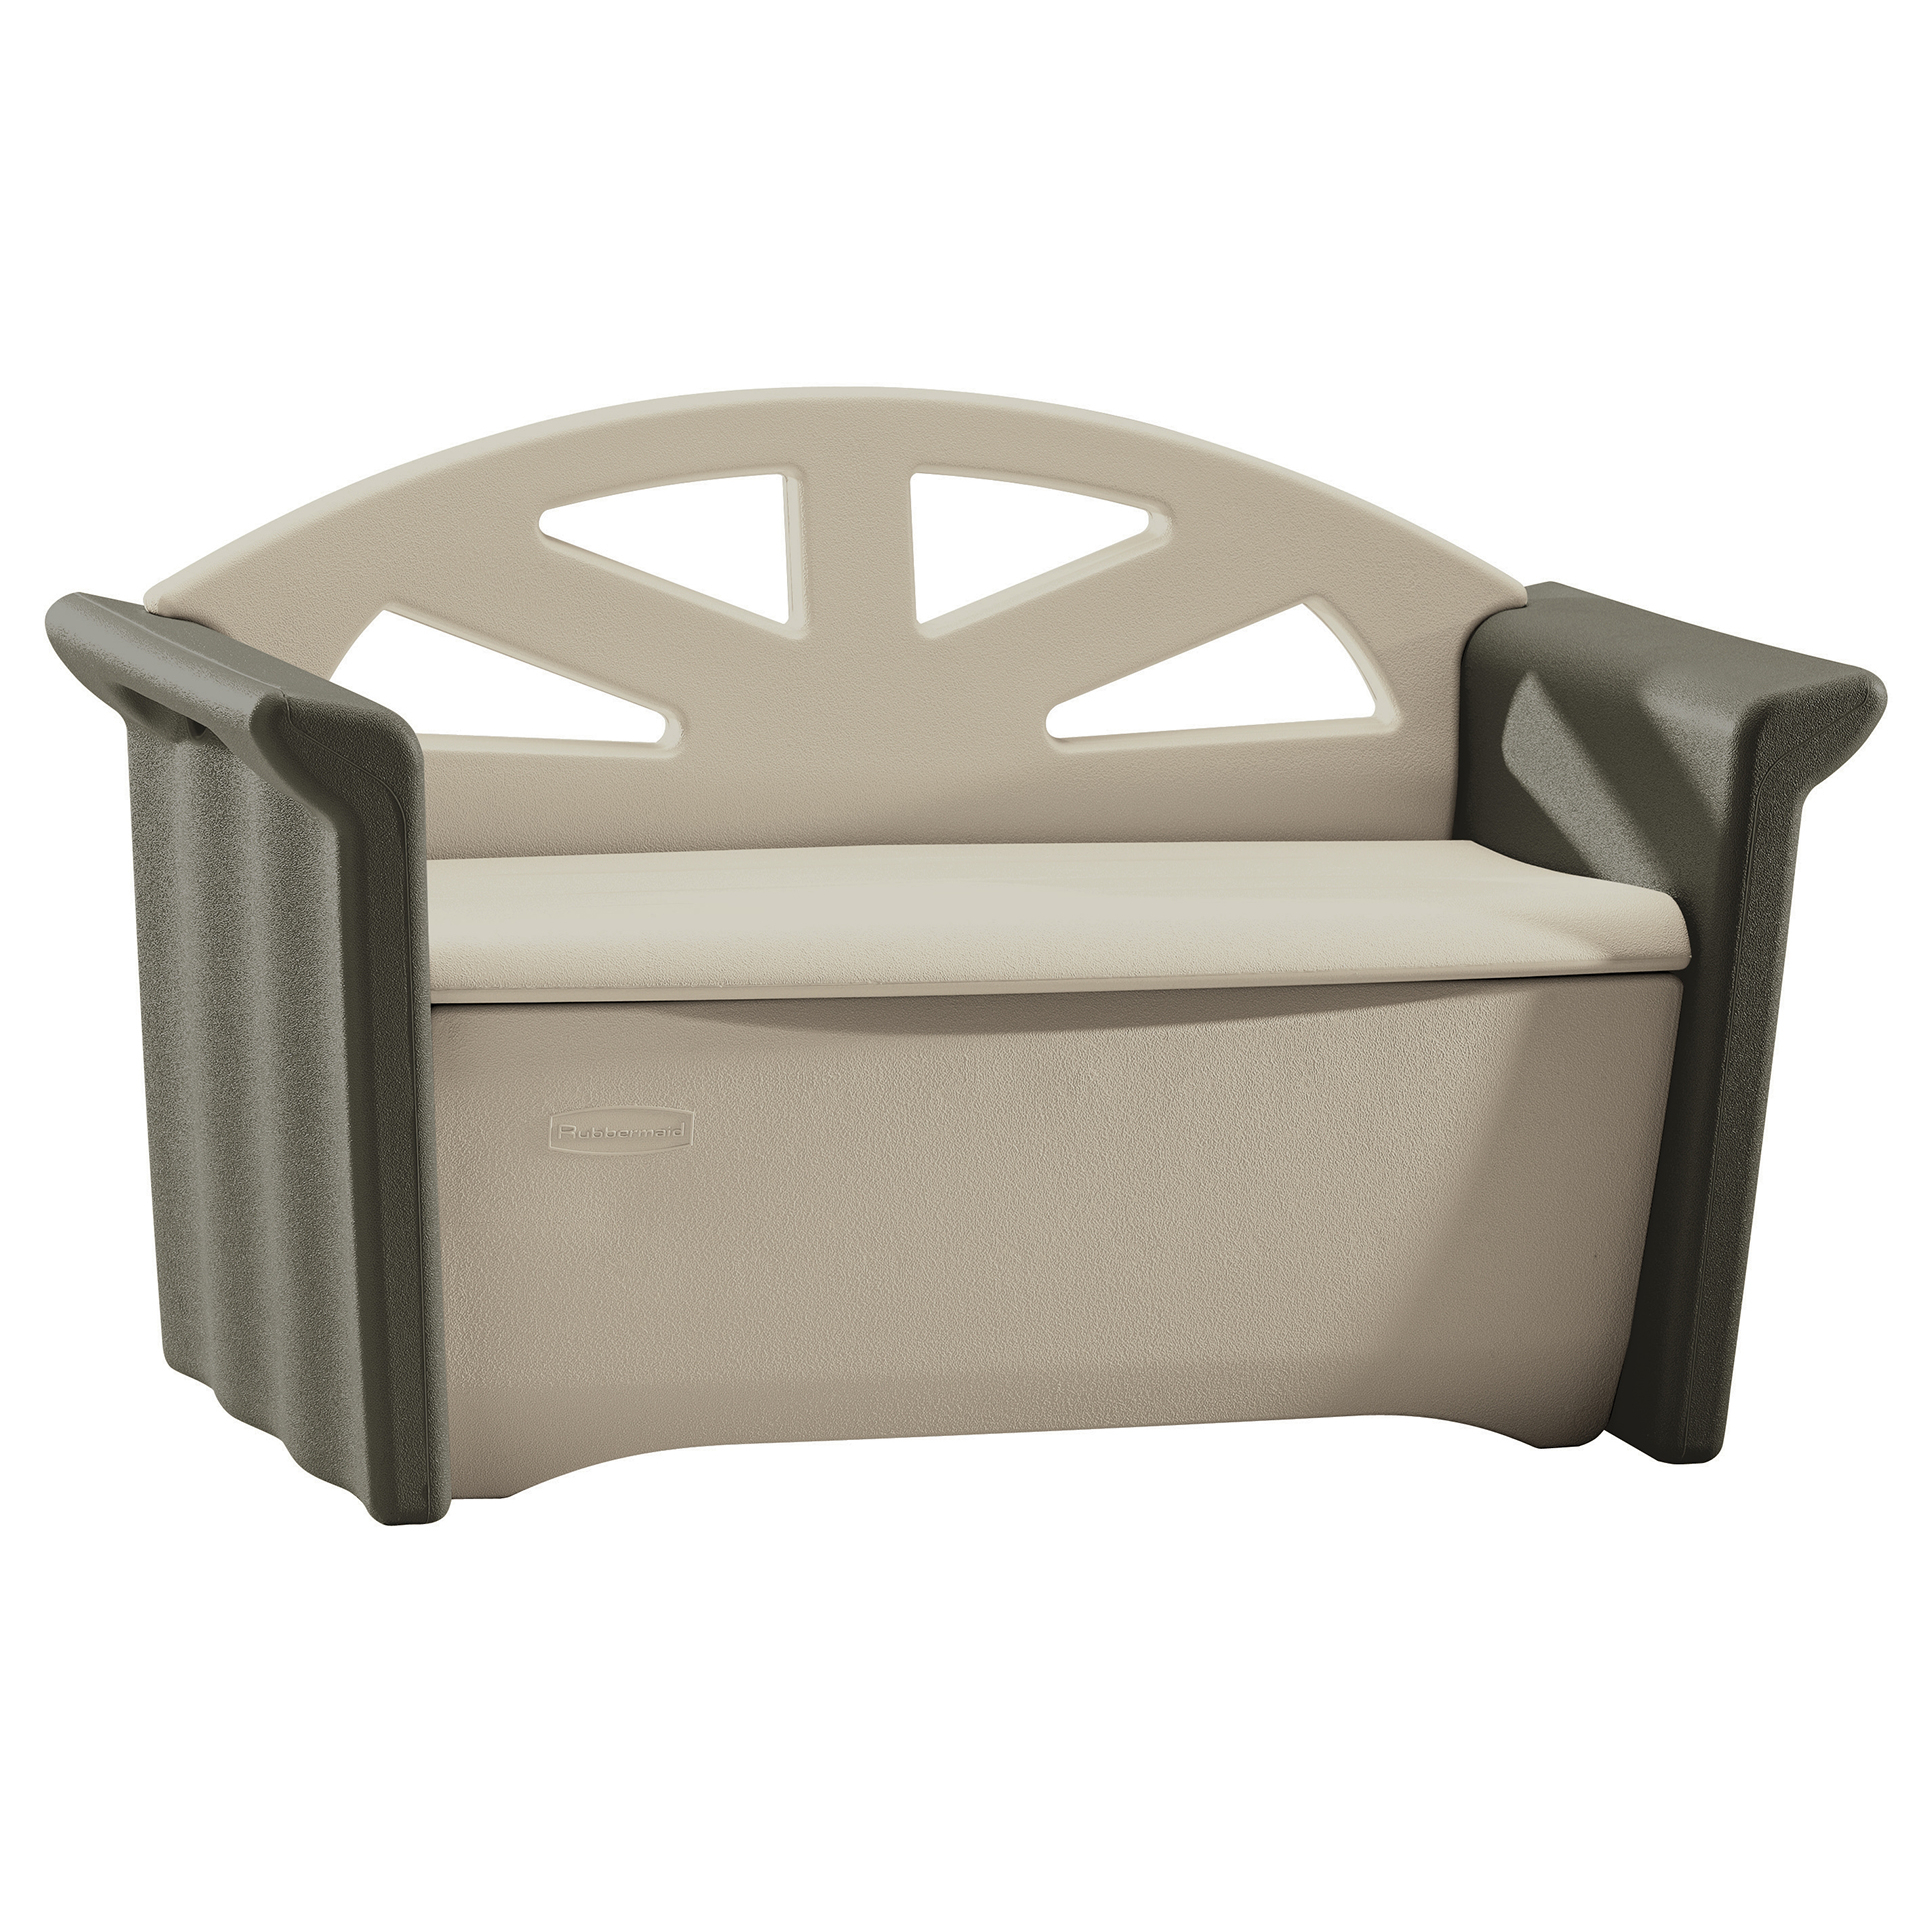 "Rubbermaid FG376401OLVSS 3' H X 4' W X 25"" D Patio Olive & Sandstone Storage Bench"